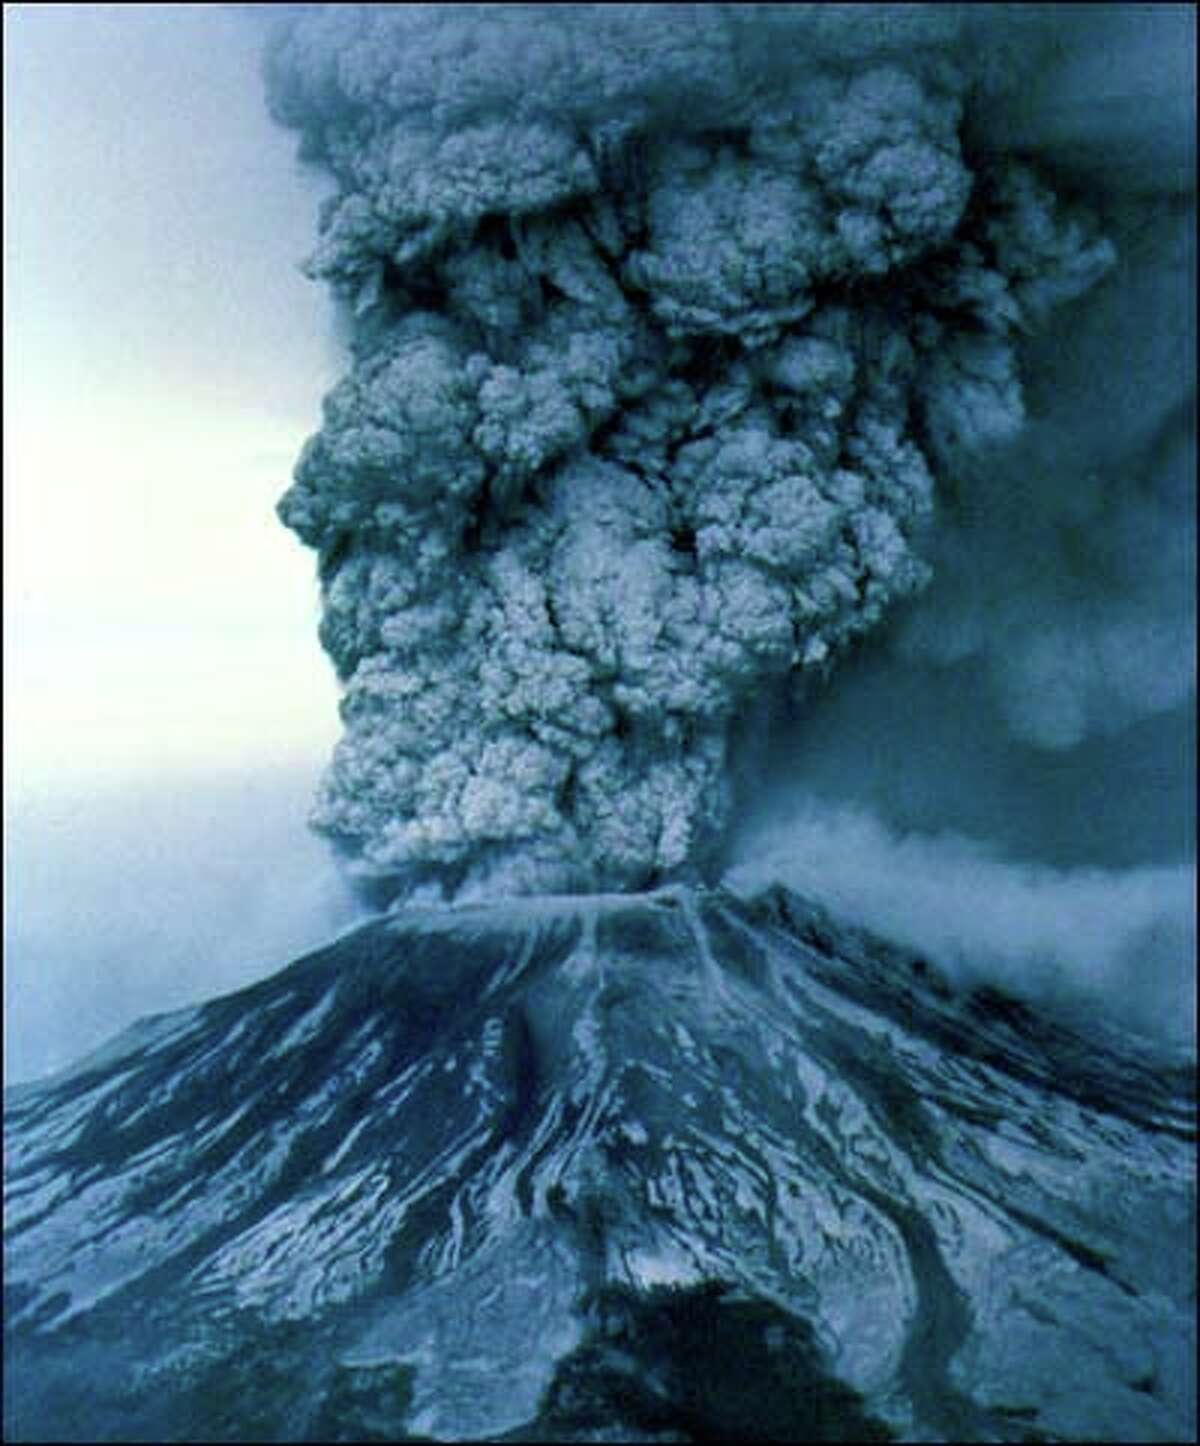 With the fury of a 24-megaton atomic bomb, hot volcanic ash exploded 60,000 feet into the sky. The blast killed 57 people.